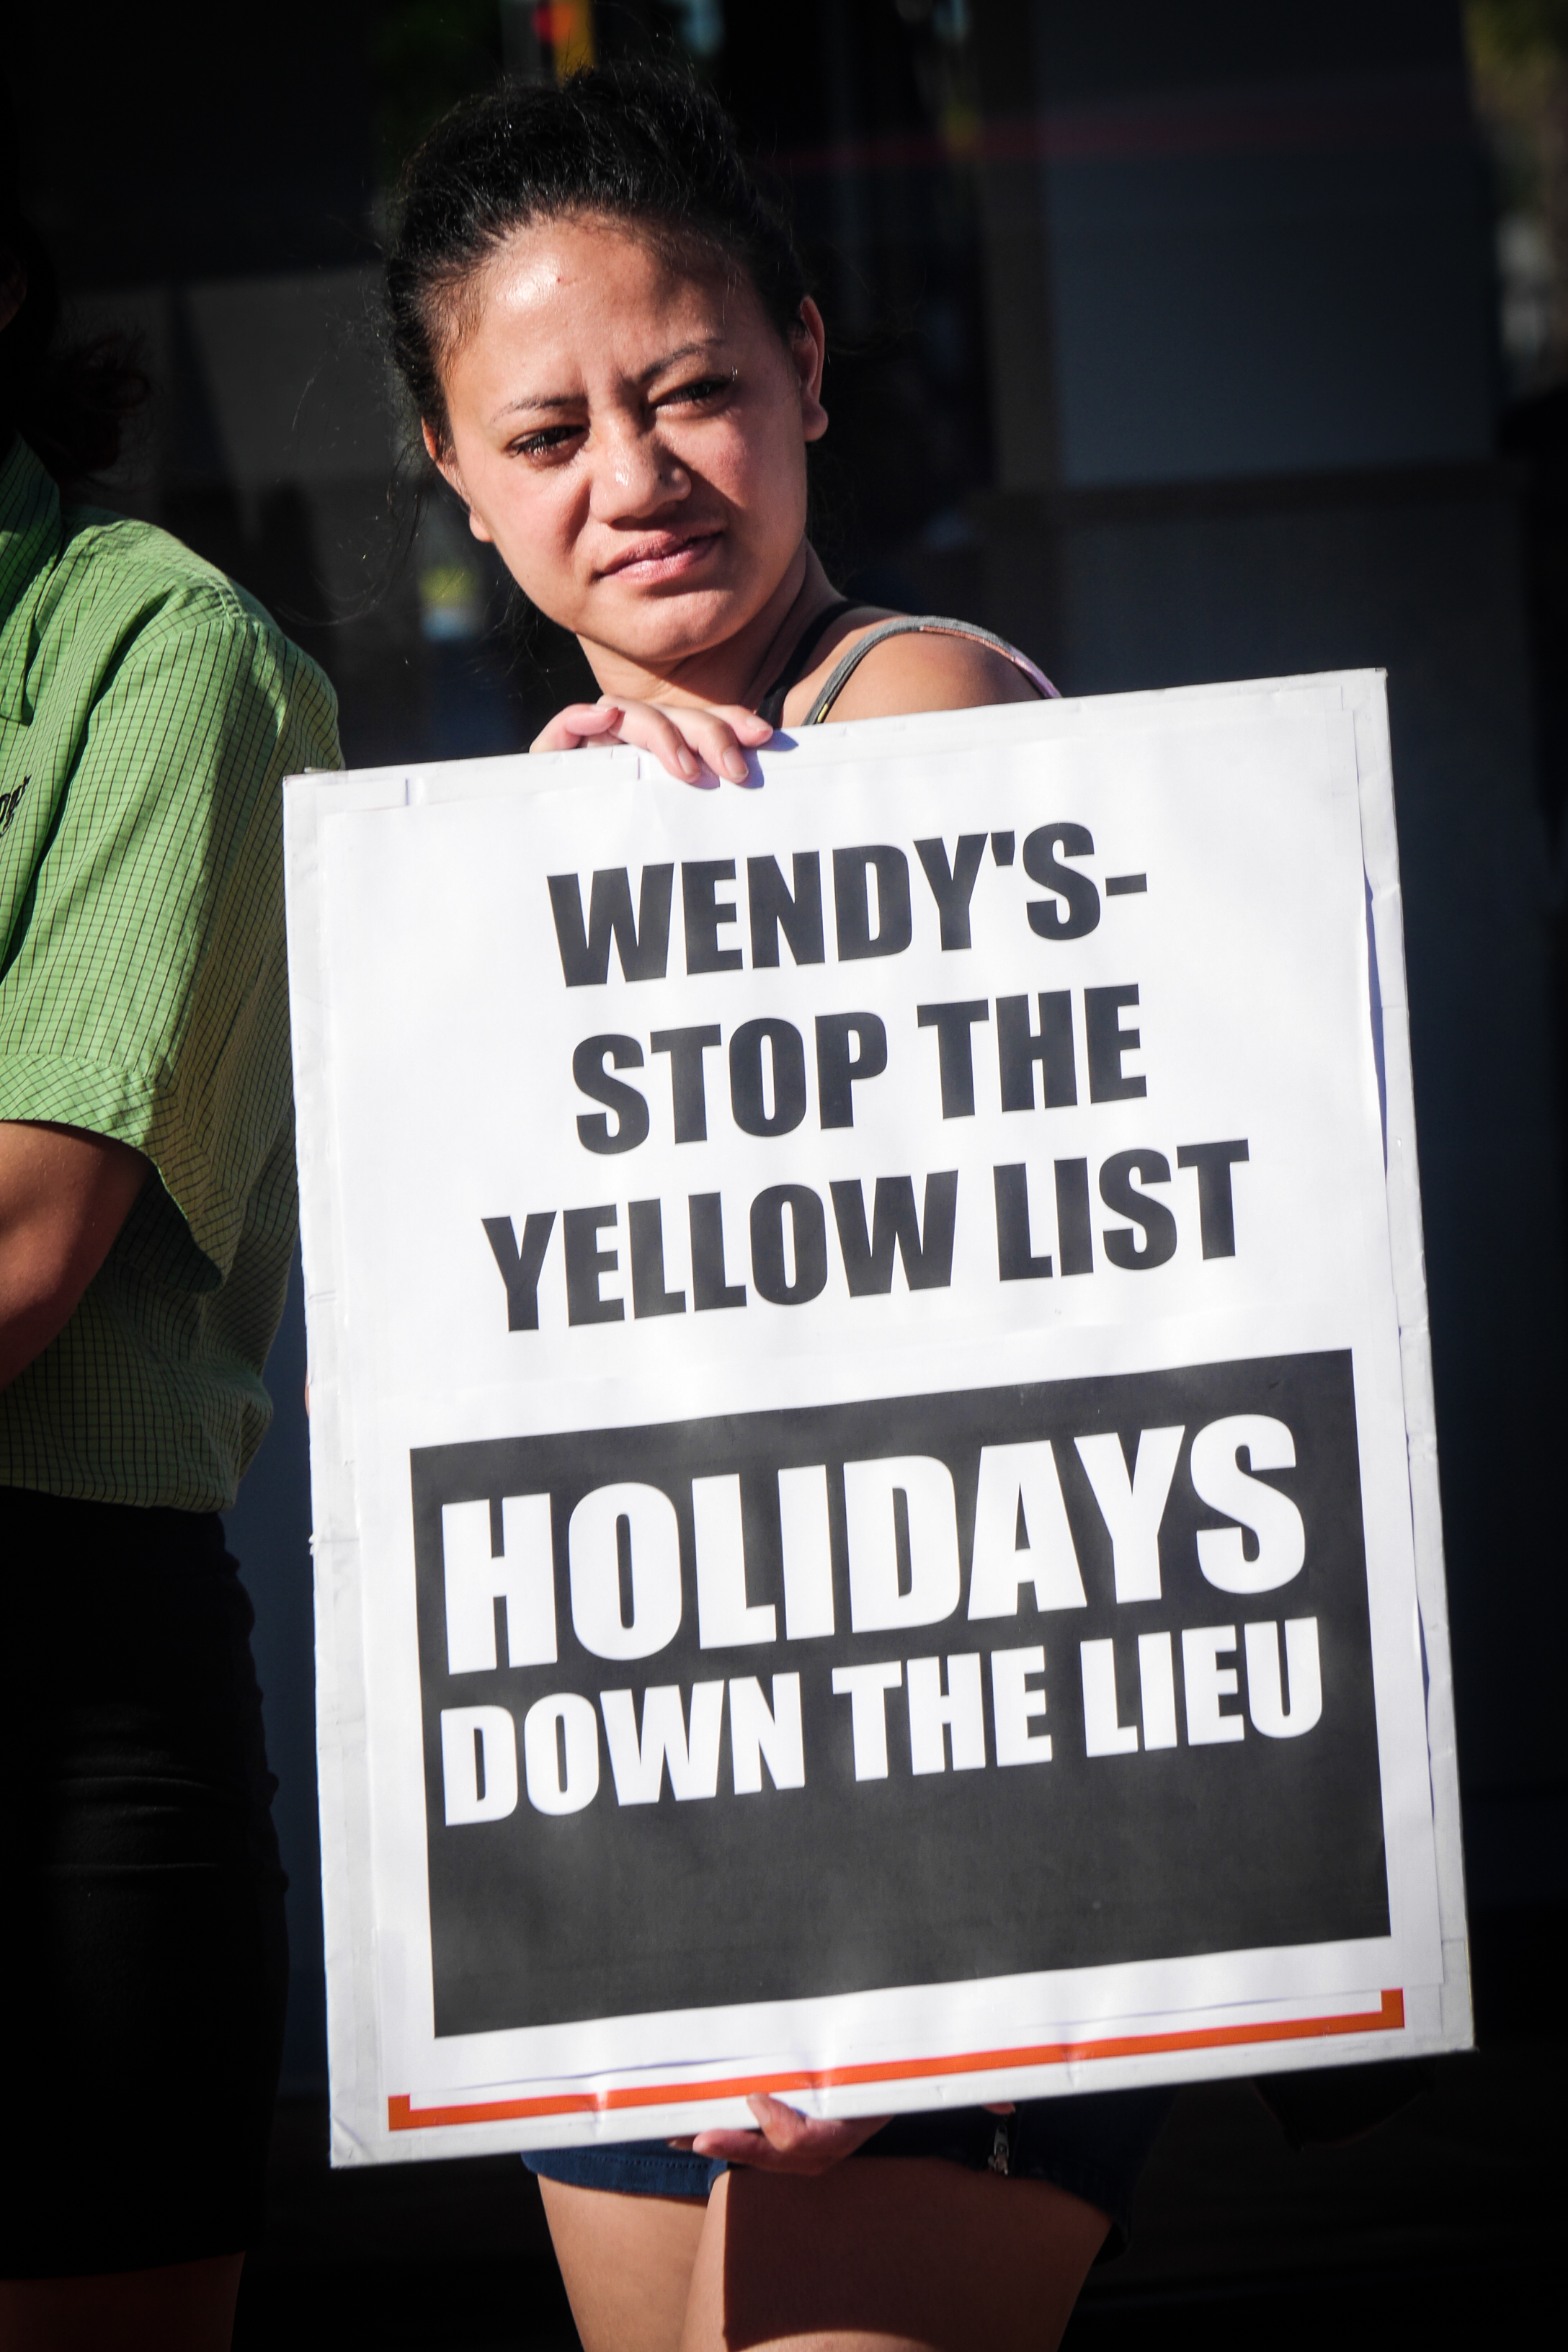 Wendy's must give workers 5 years worth of alternative holidays